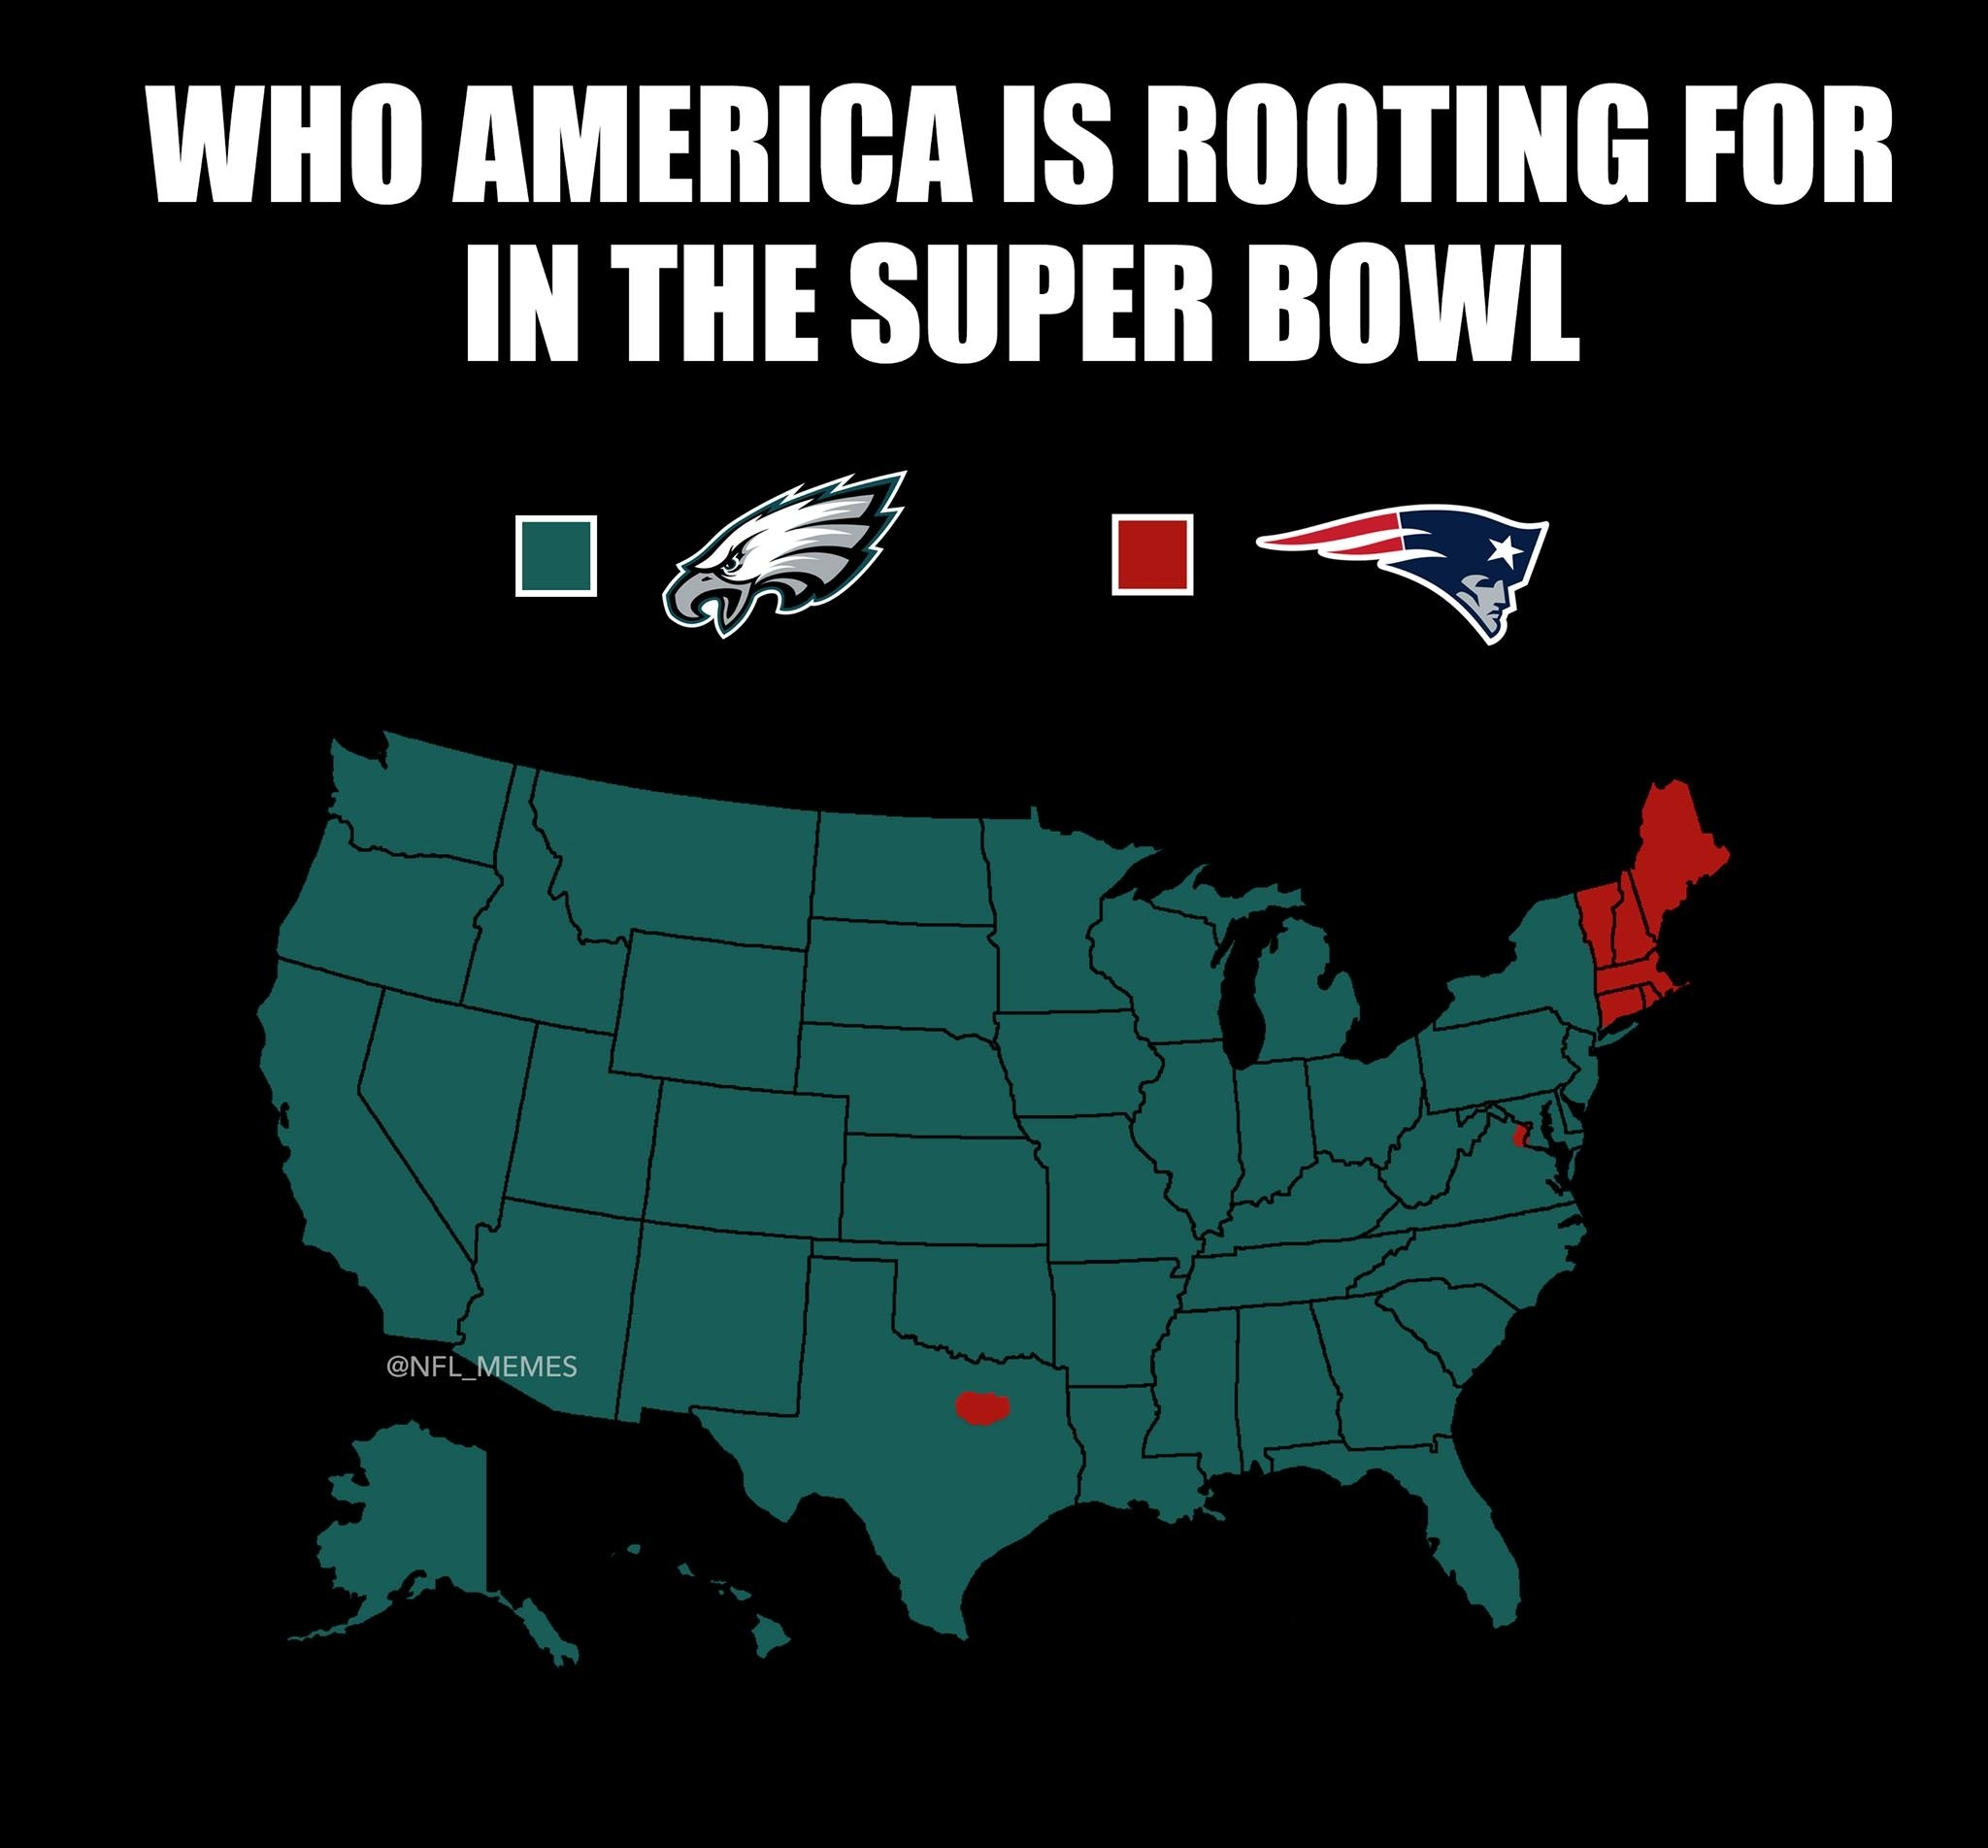 Who America Is Rooting For In The Super Bowl - Common Sense regarding Super Bowl Rooting Map 2019